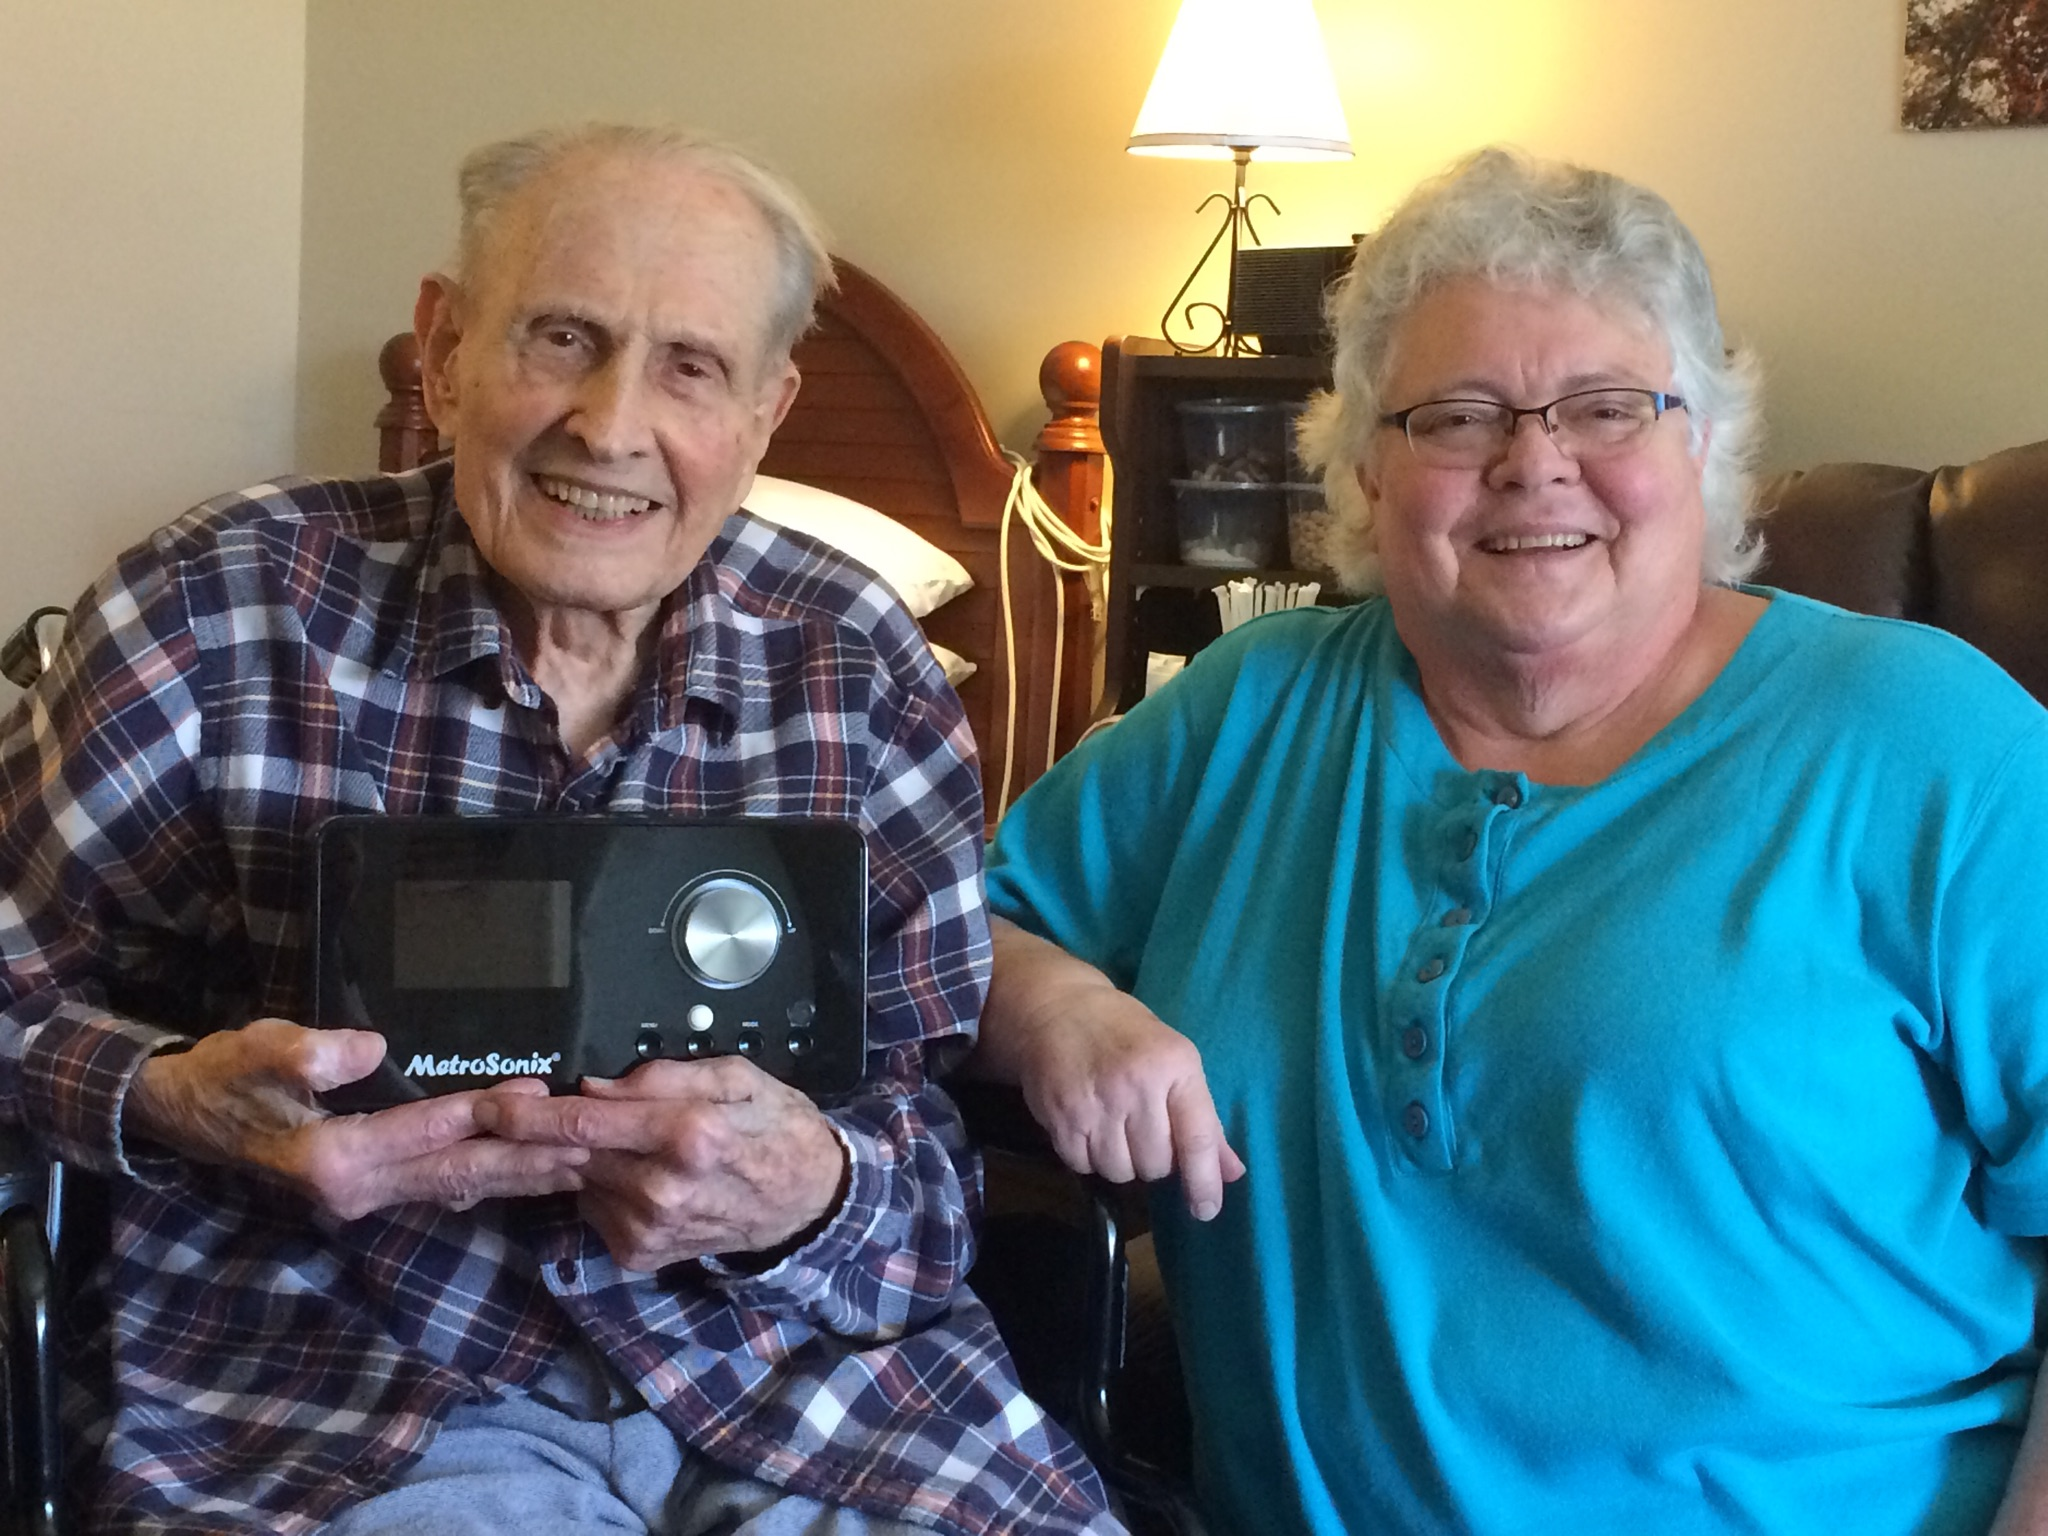 Older man in plaid shirt holds a radio. To his right, sits a lady in a blue shirt.